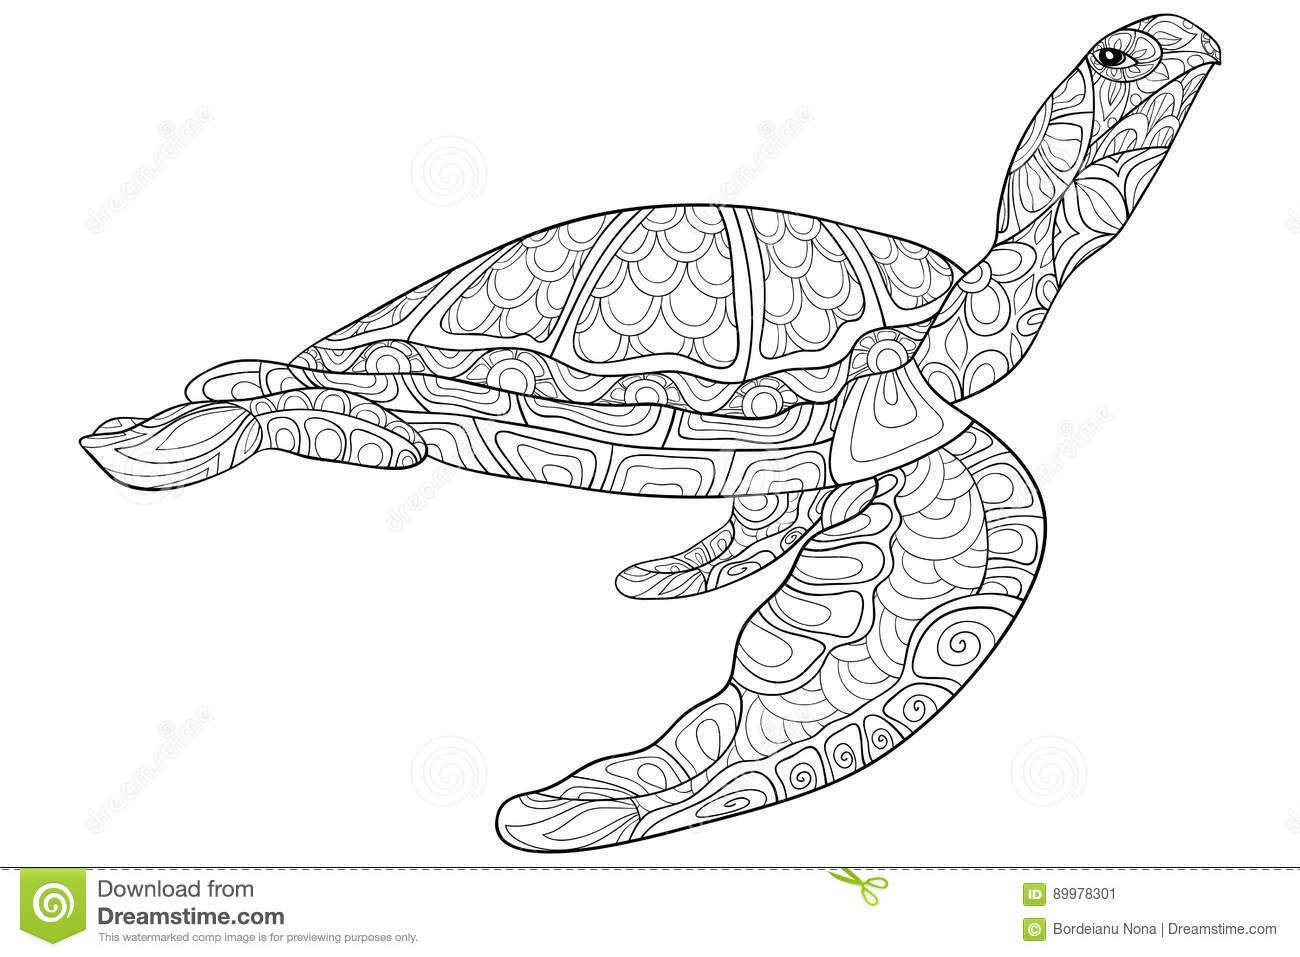 Adult Coloring Page Turtle Stock Vector - Illustration of ethnic ...